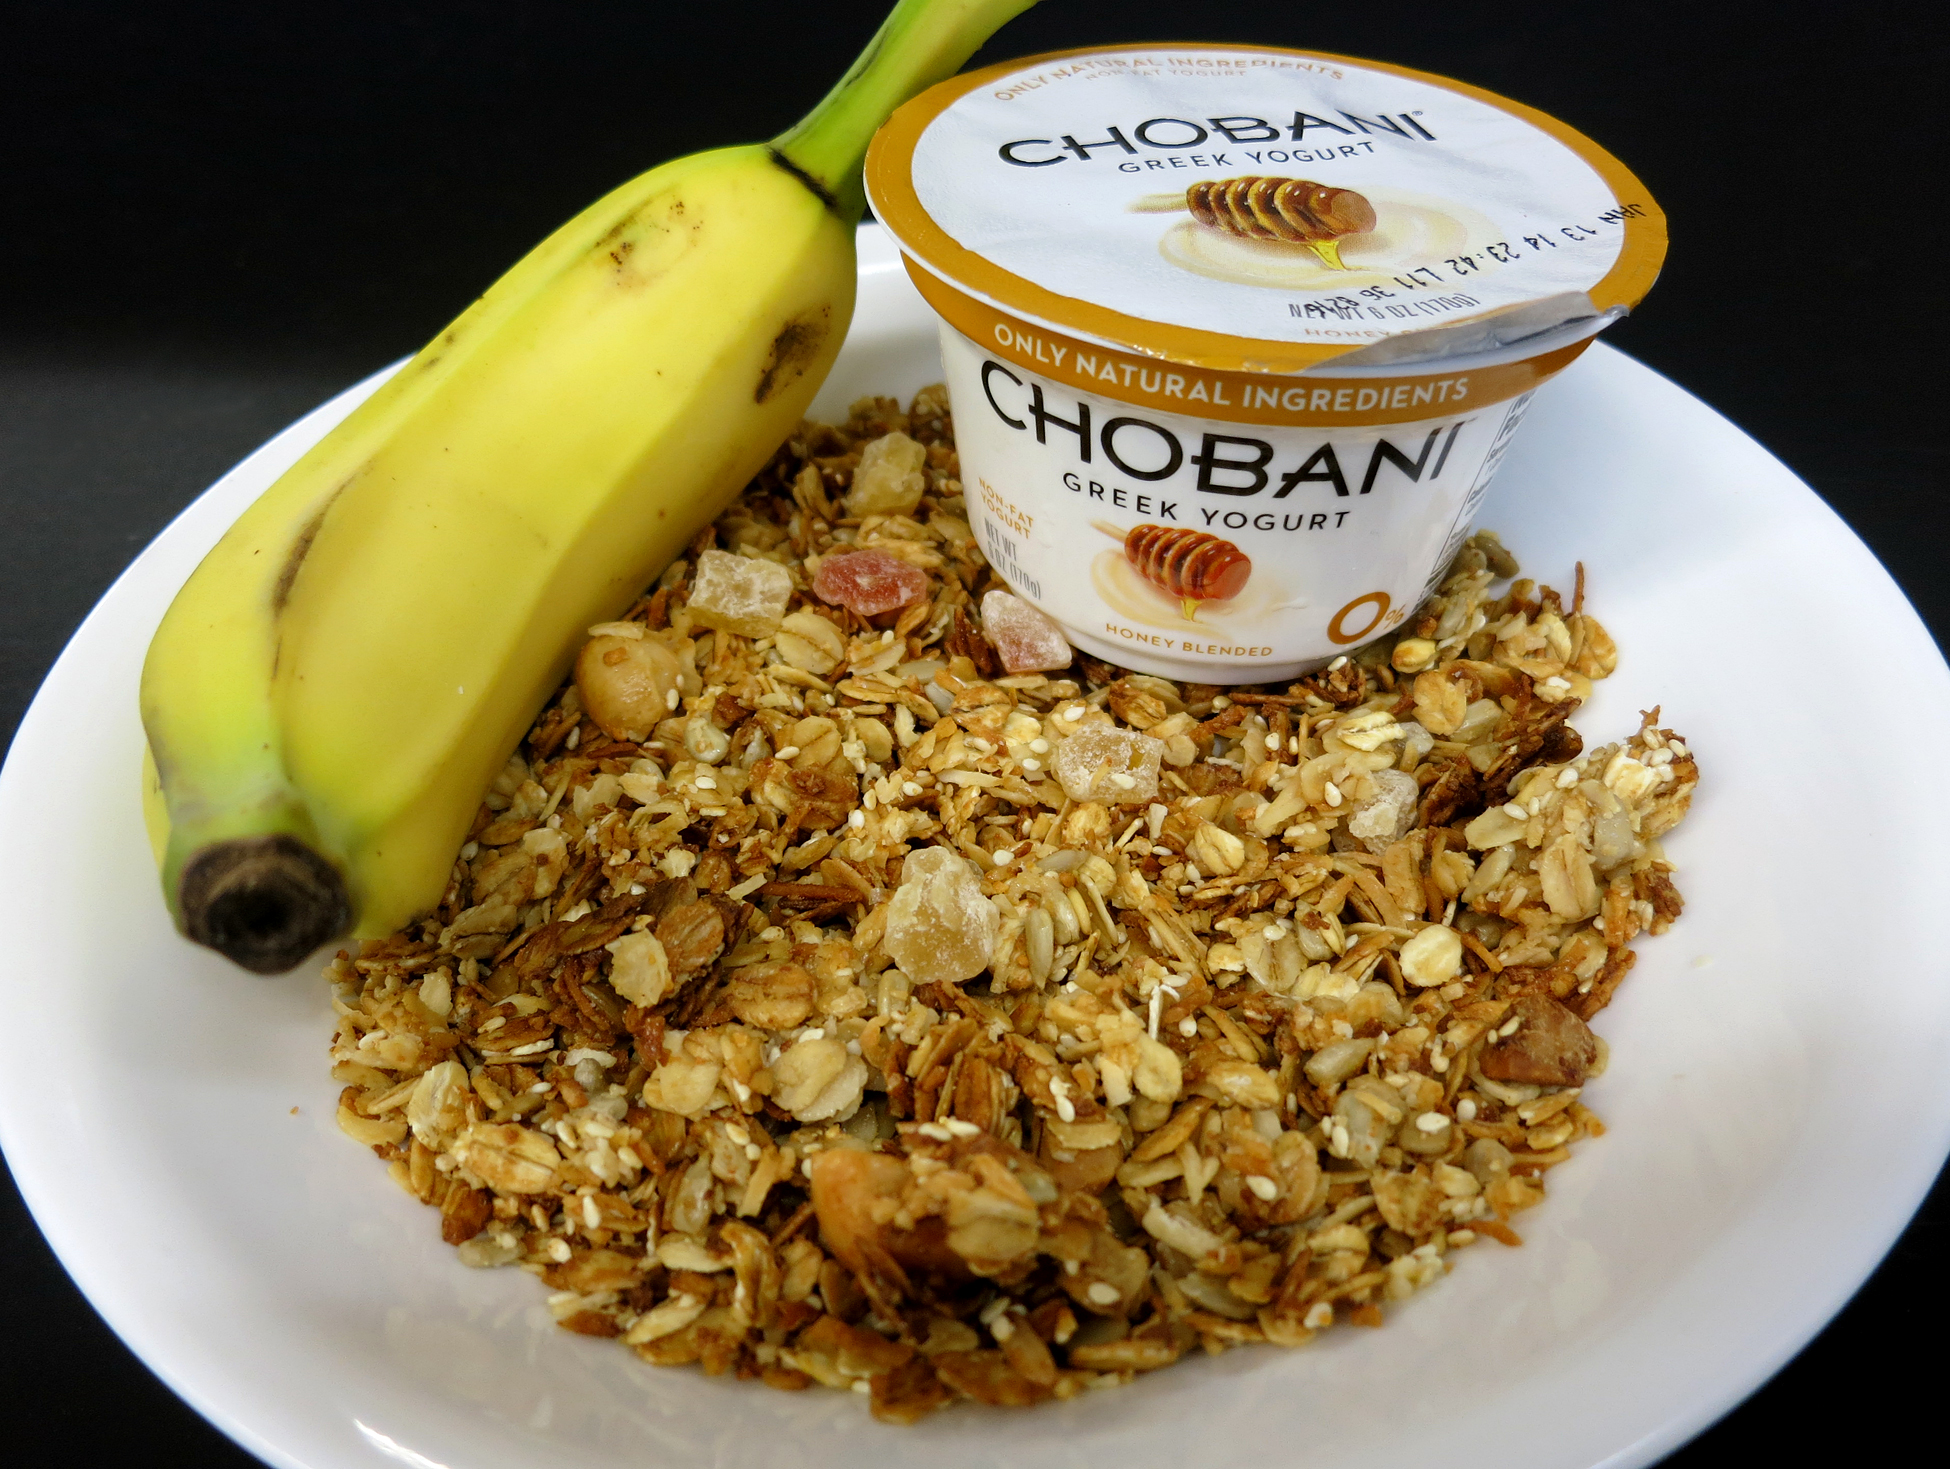 Image result for chobani yogurt with granola